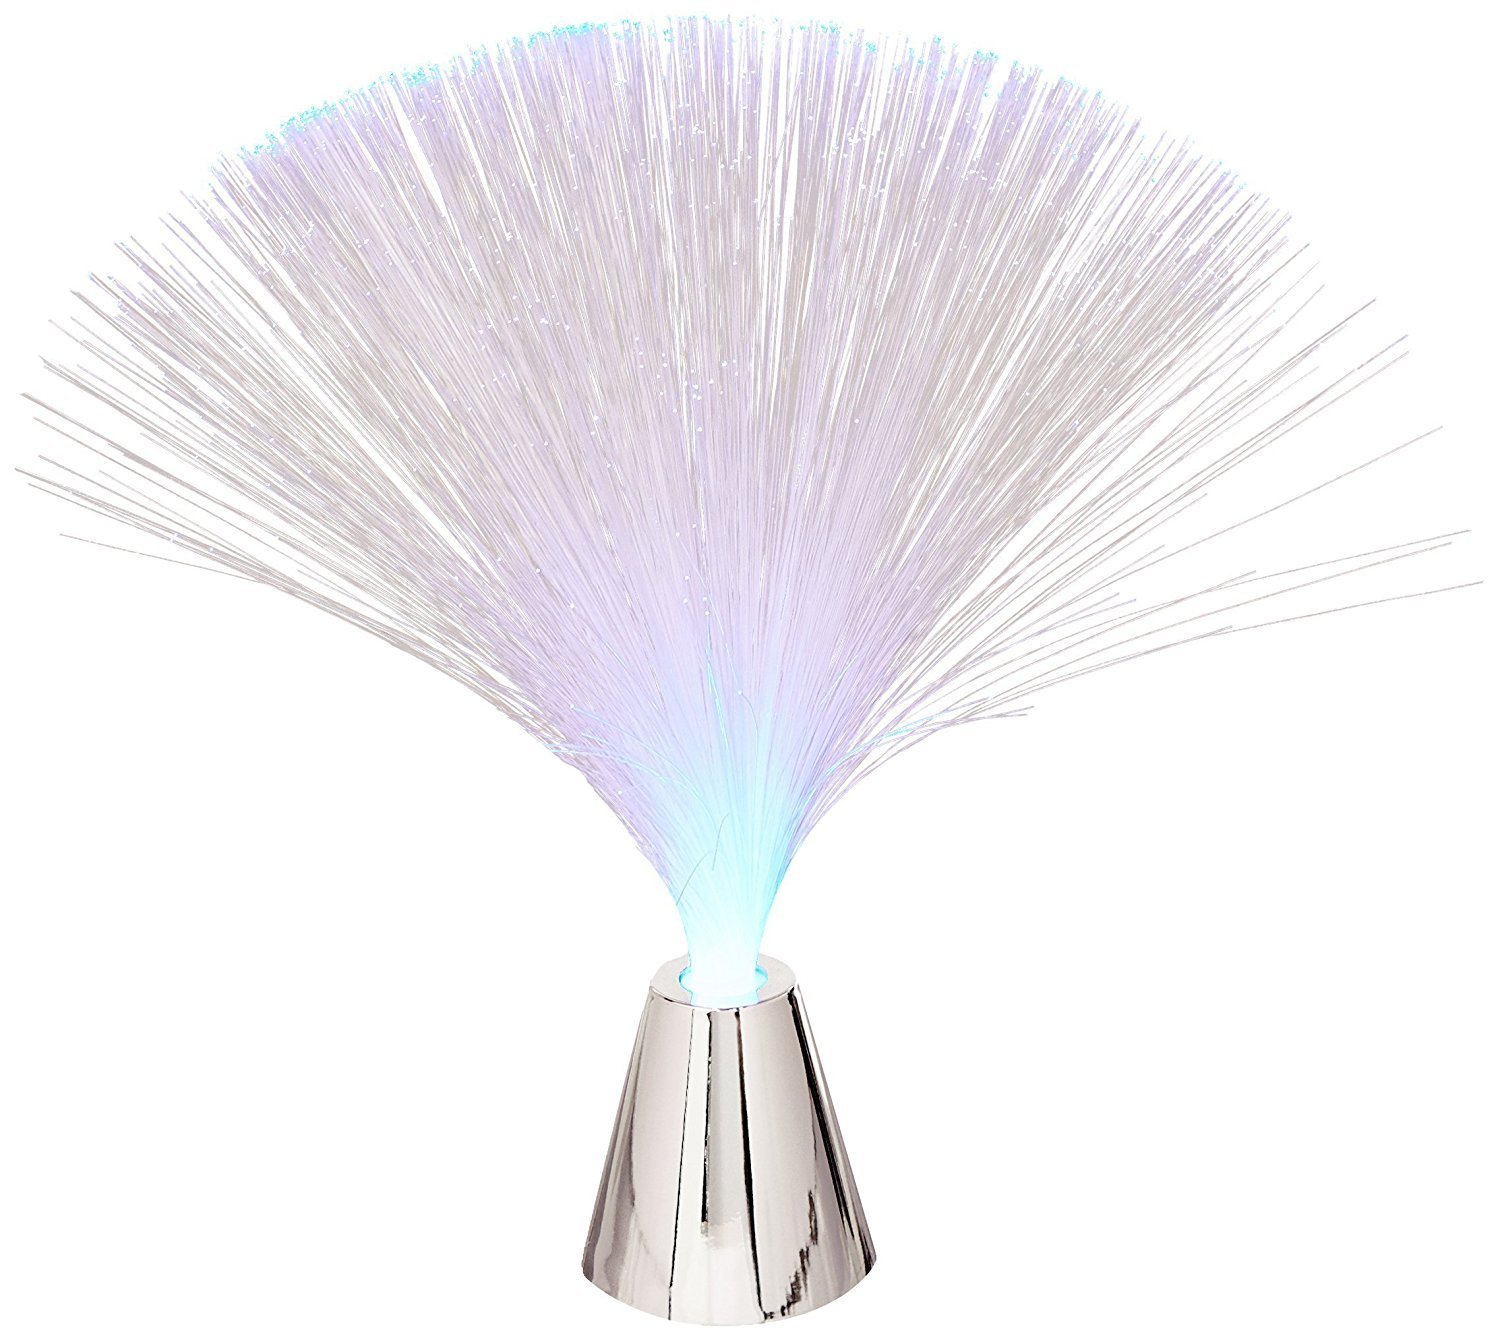 Battery-Operated LED Fiber Lamp with Chrome Base, Blue